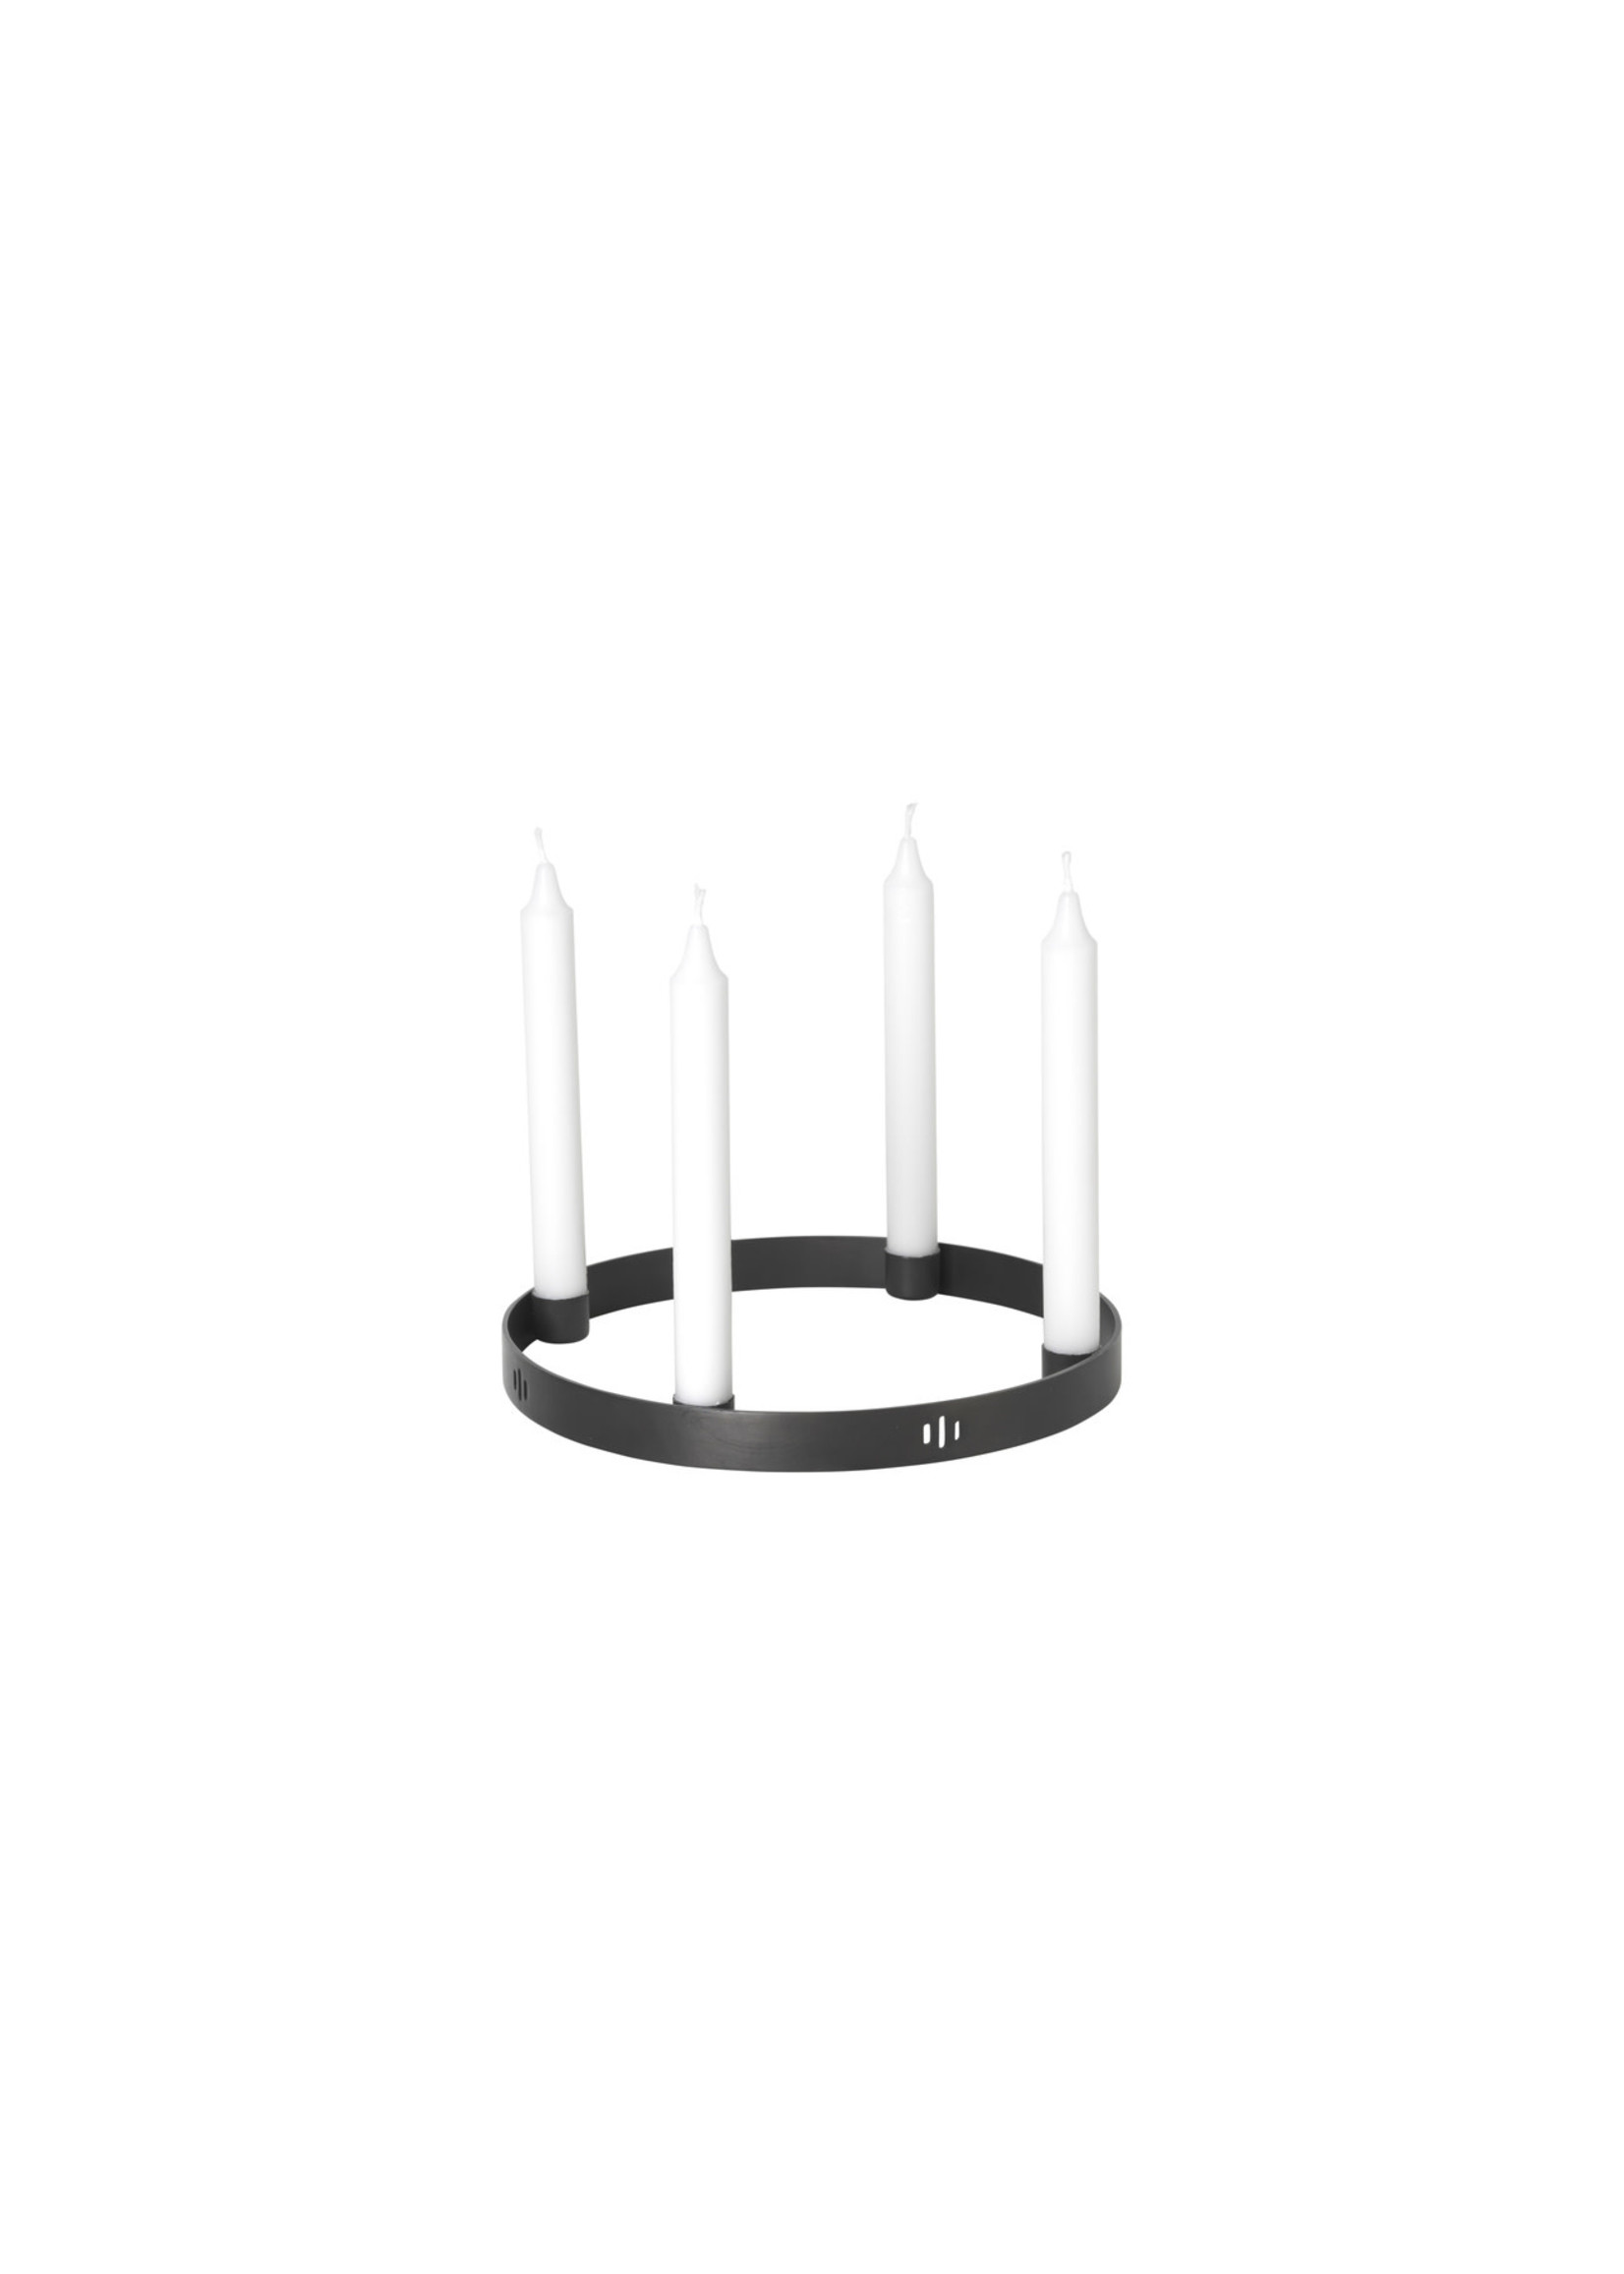 ferm LIVING ferm LIVING Candle Holder Circle - Small - Black Brass